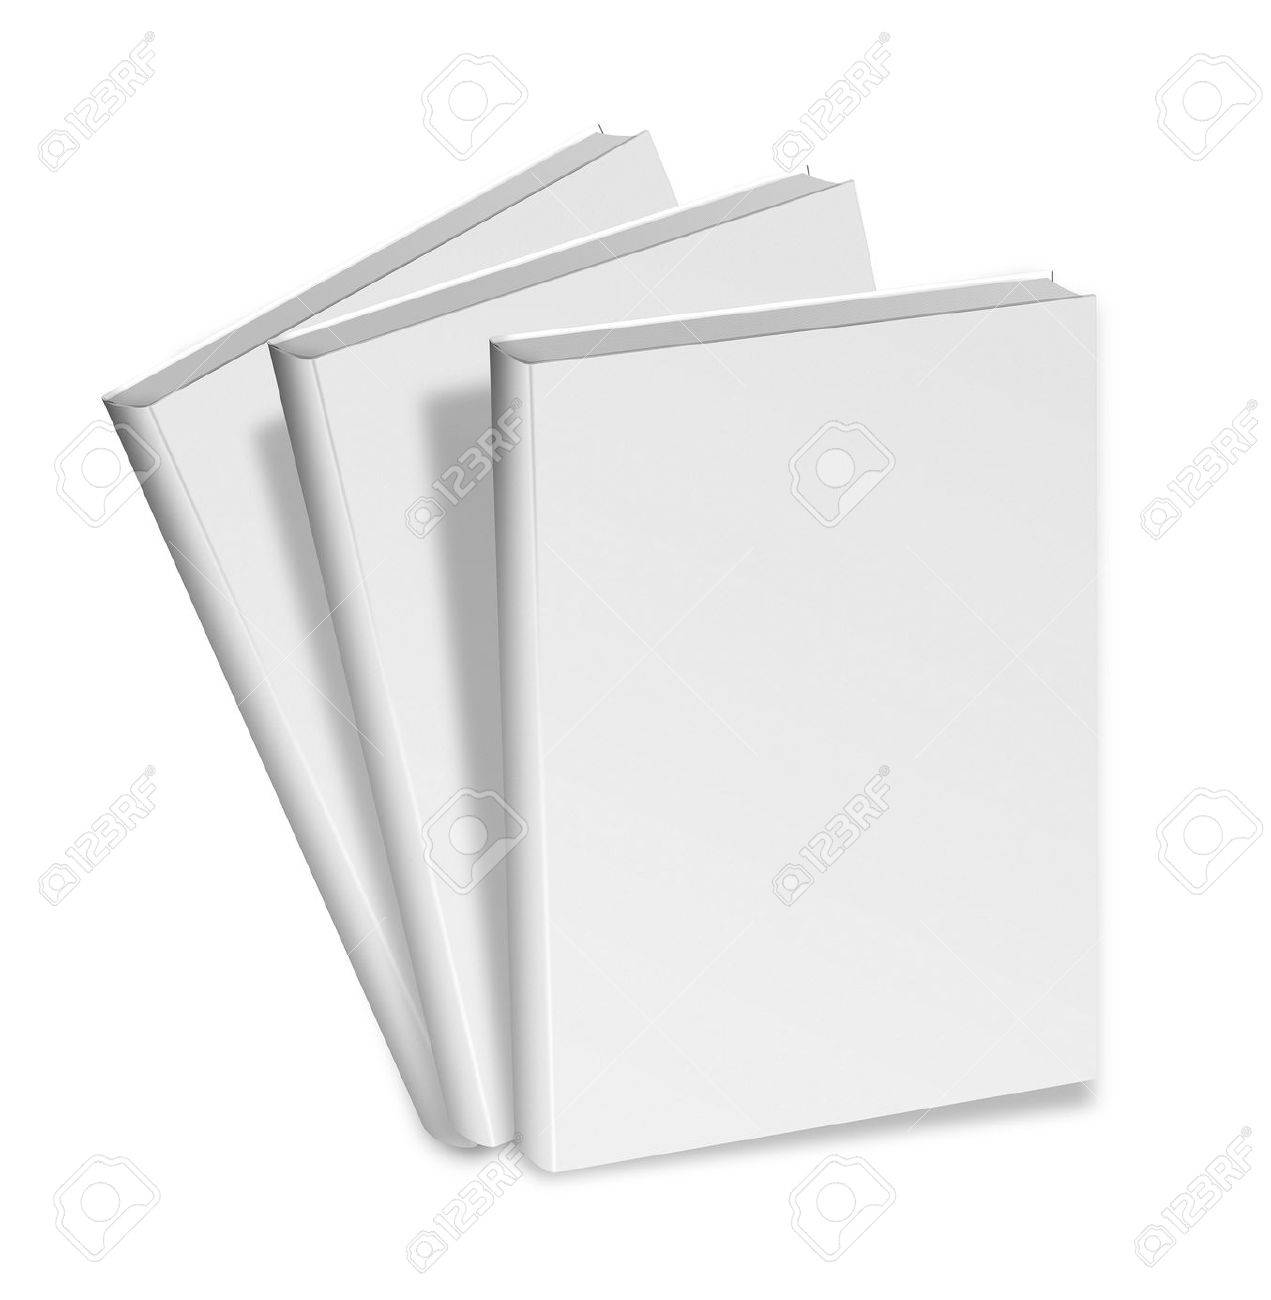 collection of various blank white books on white background with clipping path - 19113943